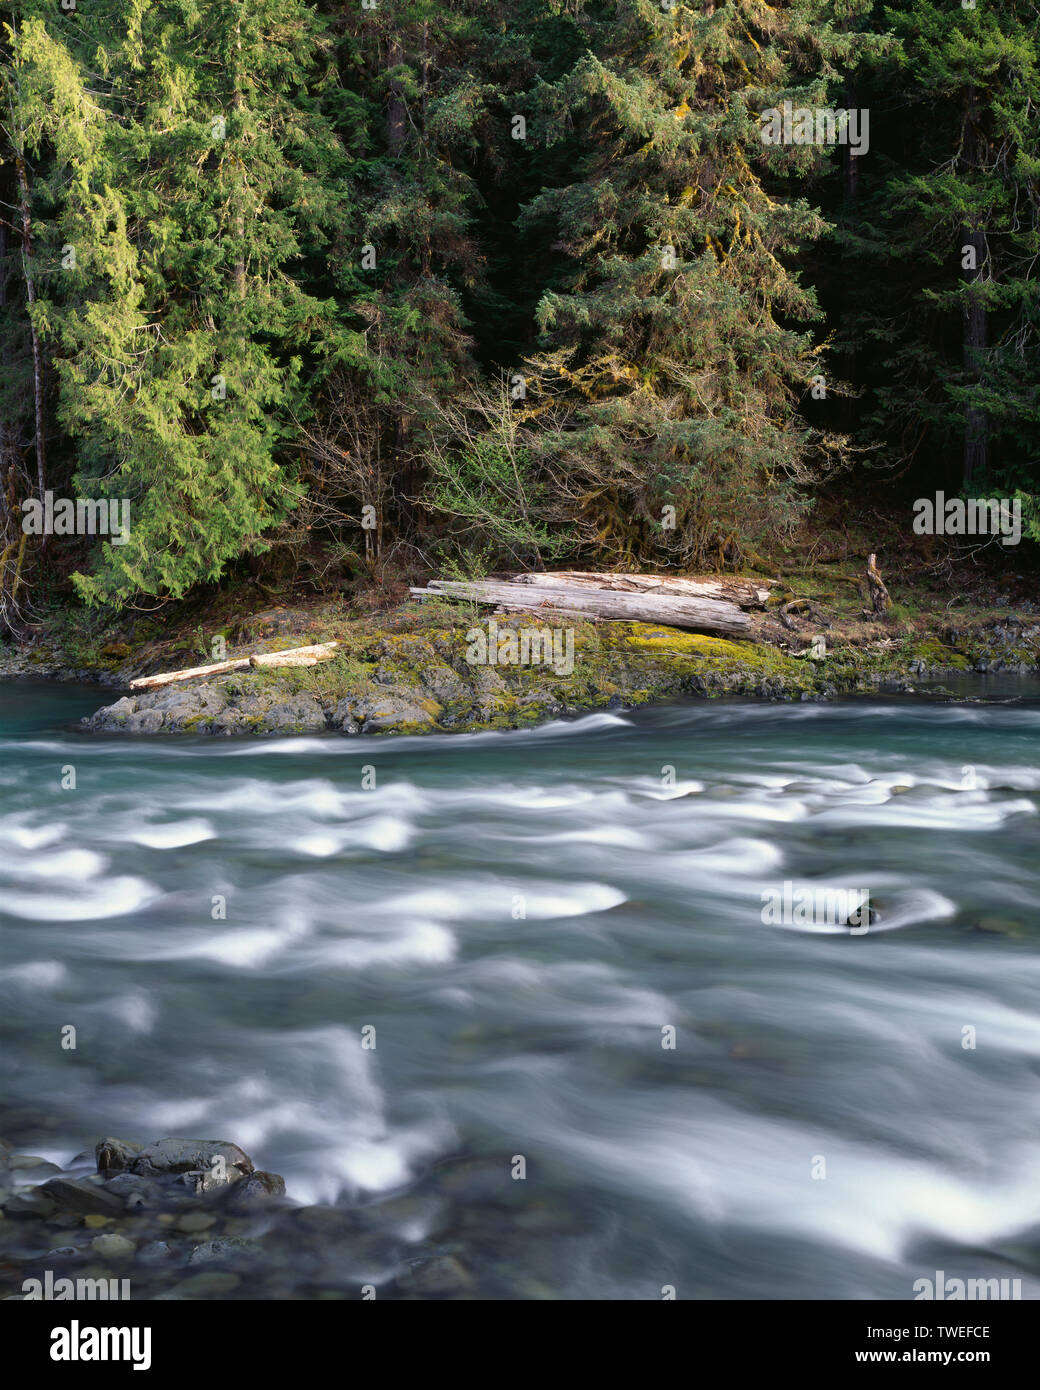 USA, Washington, Olympic National Park, Quinault River in spring and riverside rain forest; near Graves Creek - Stock Image